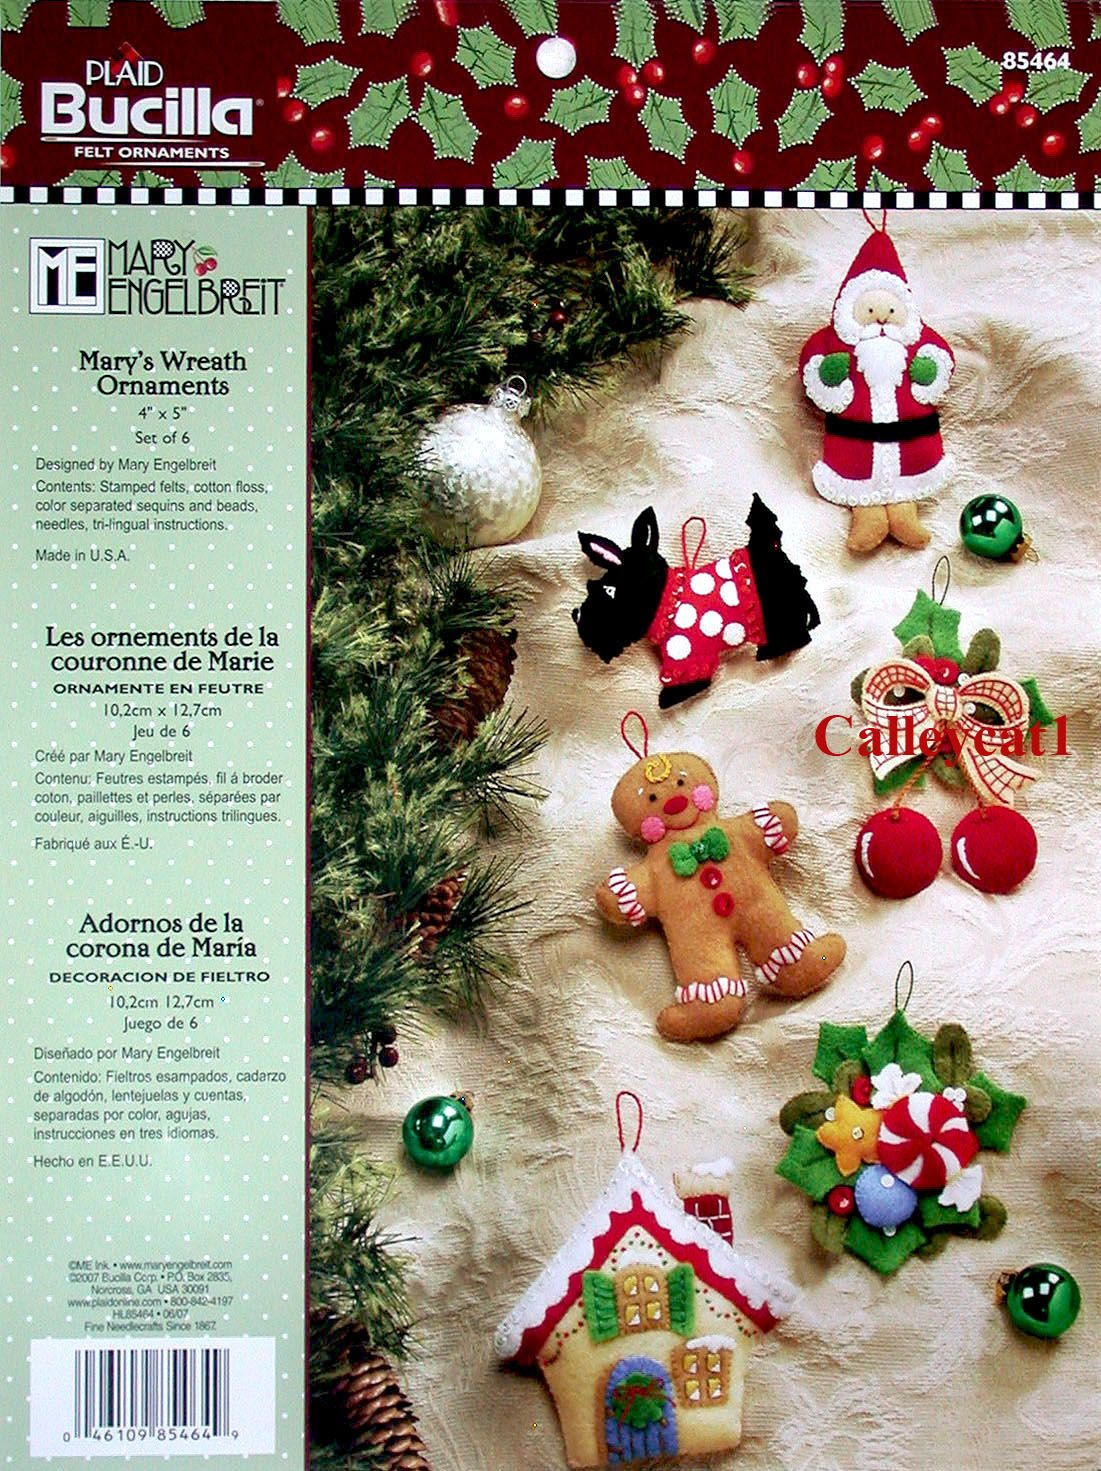 Mary S Wreath Bucilla Felt Ornament Kit 85464 Fth Studio International Felt Christmas Ornaments Felt Christmas Stockings Felt Christmas